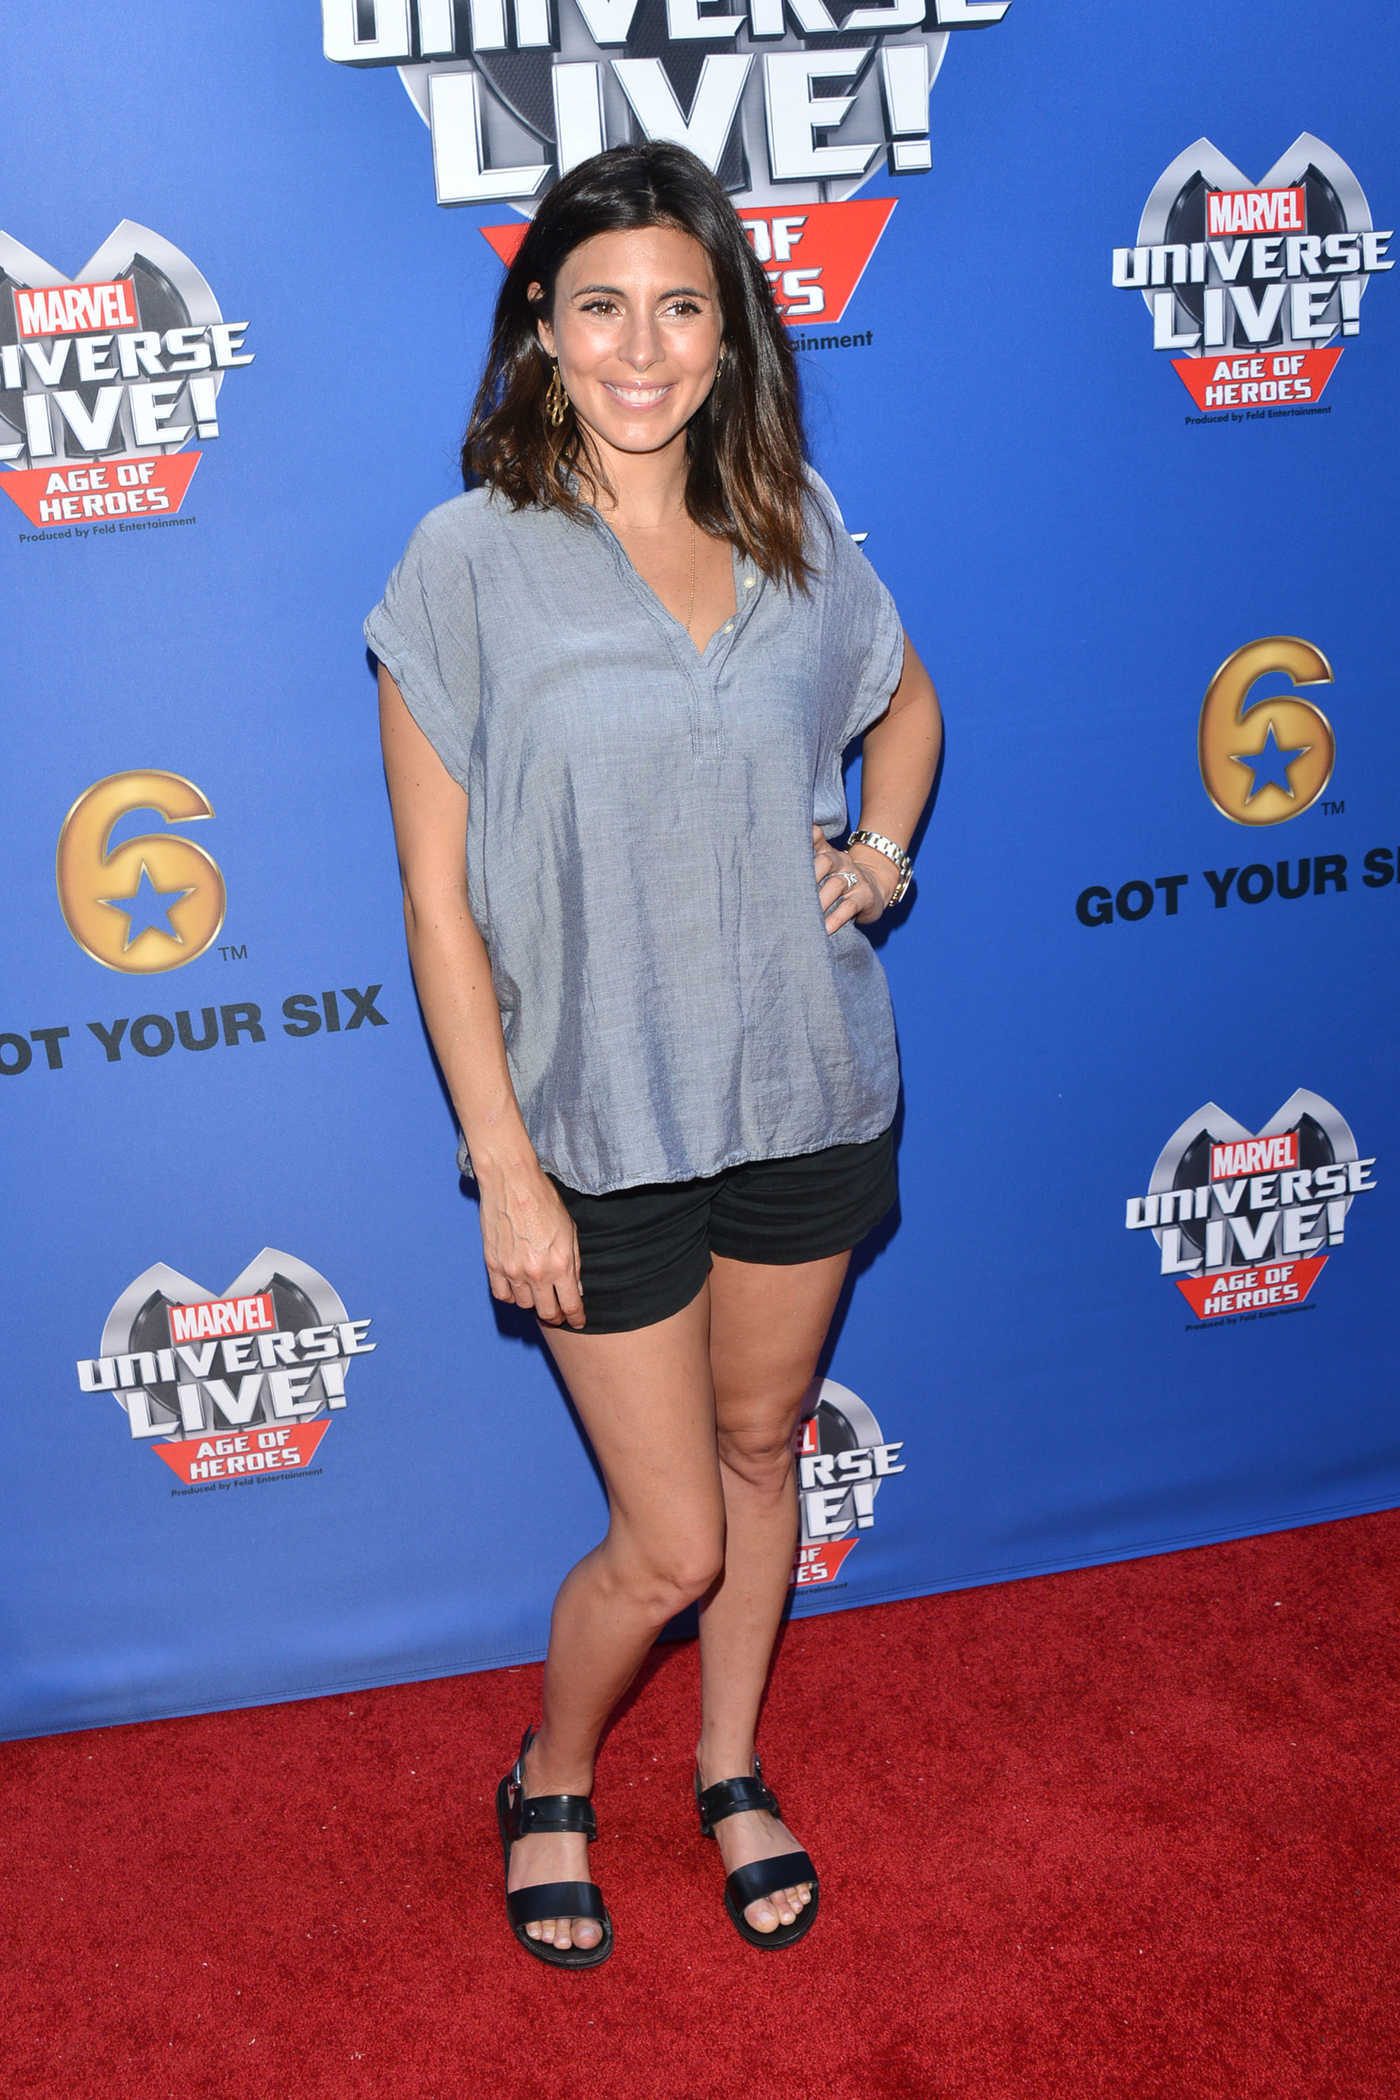 Jamie-Lynn Sigler at the Marvel Universe Live Premiere in Los Angeles 07/08/2017